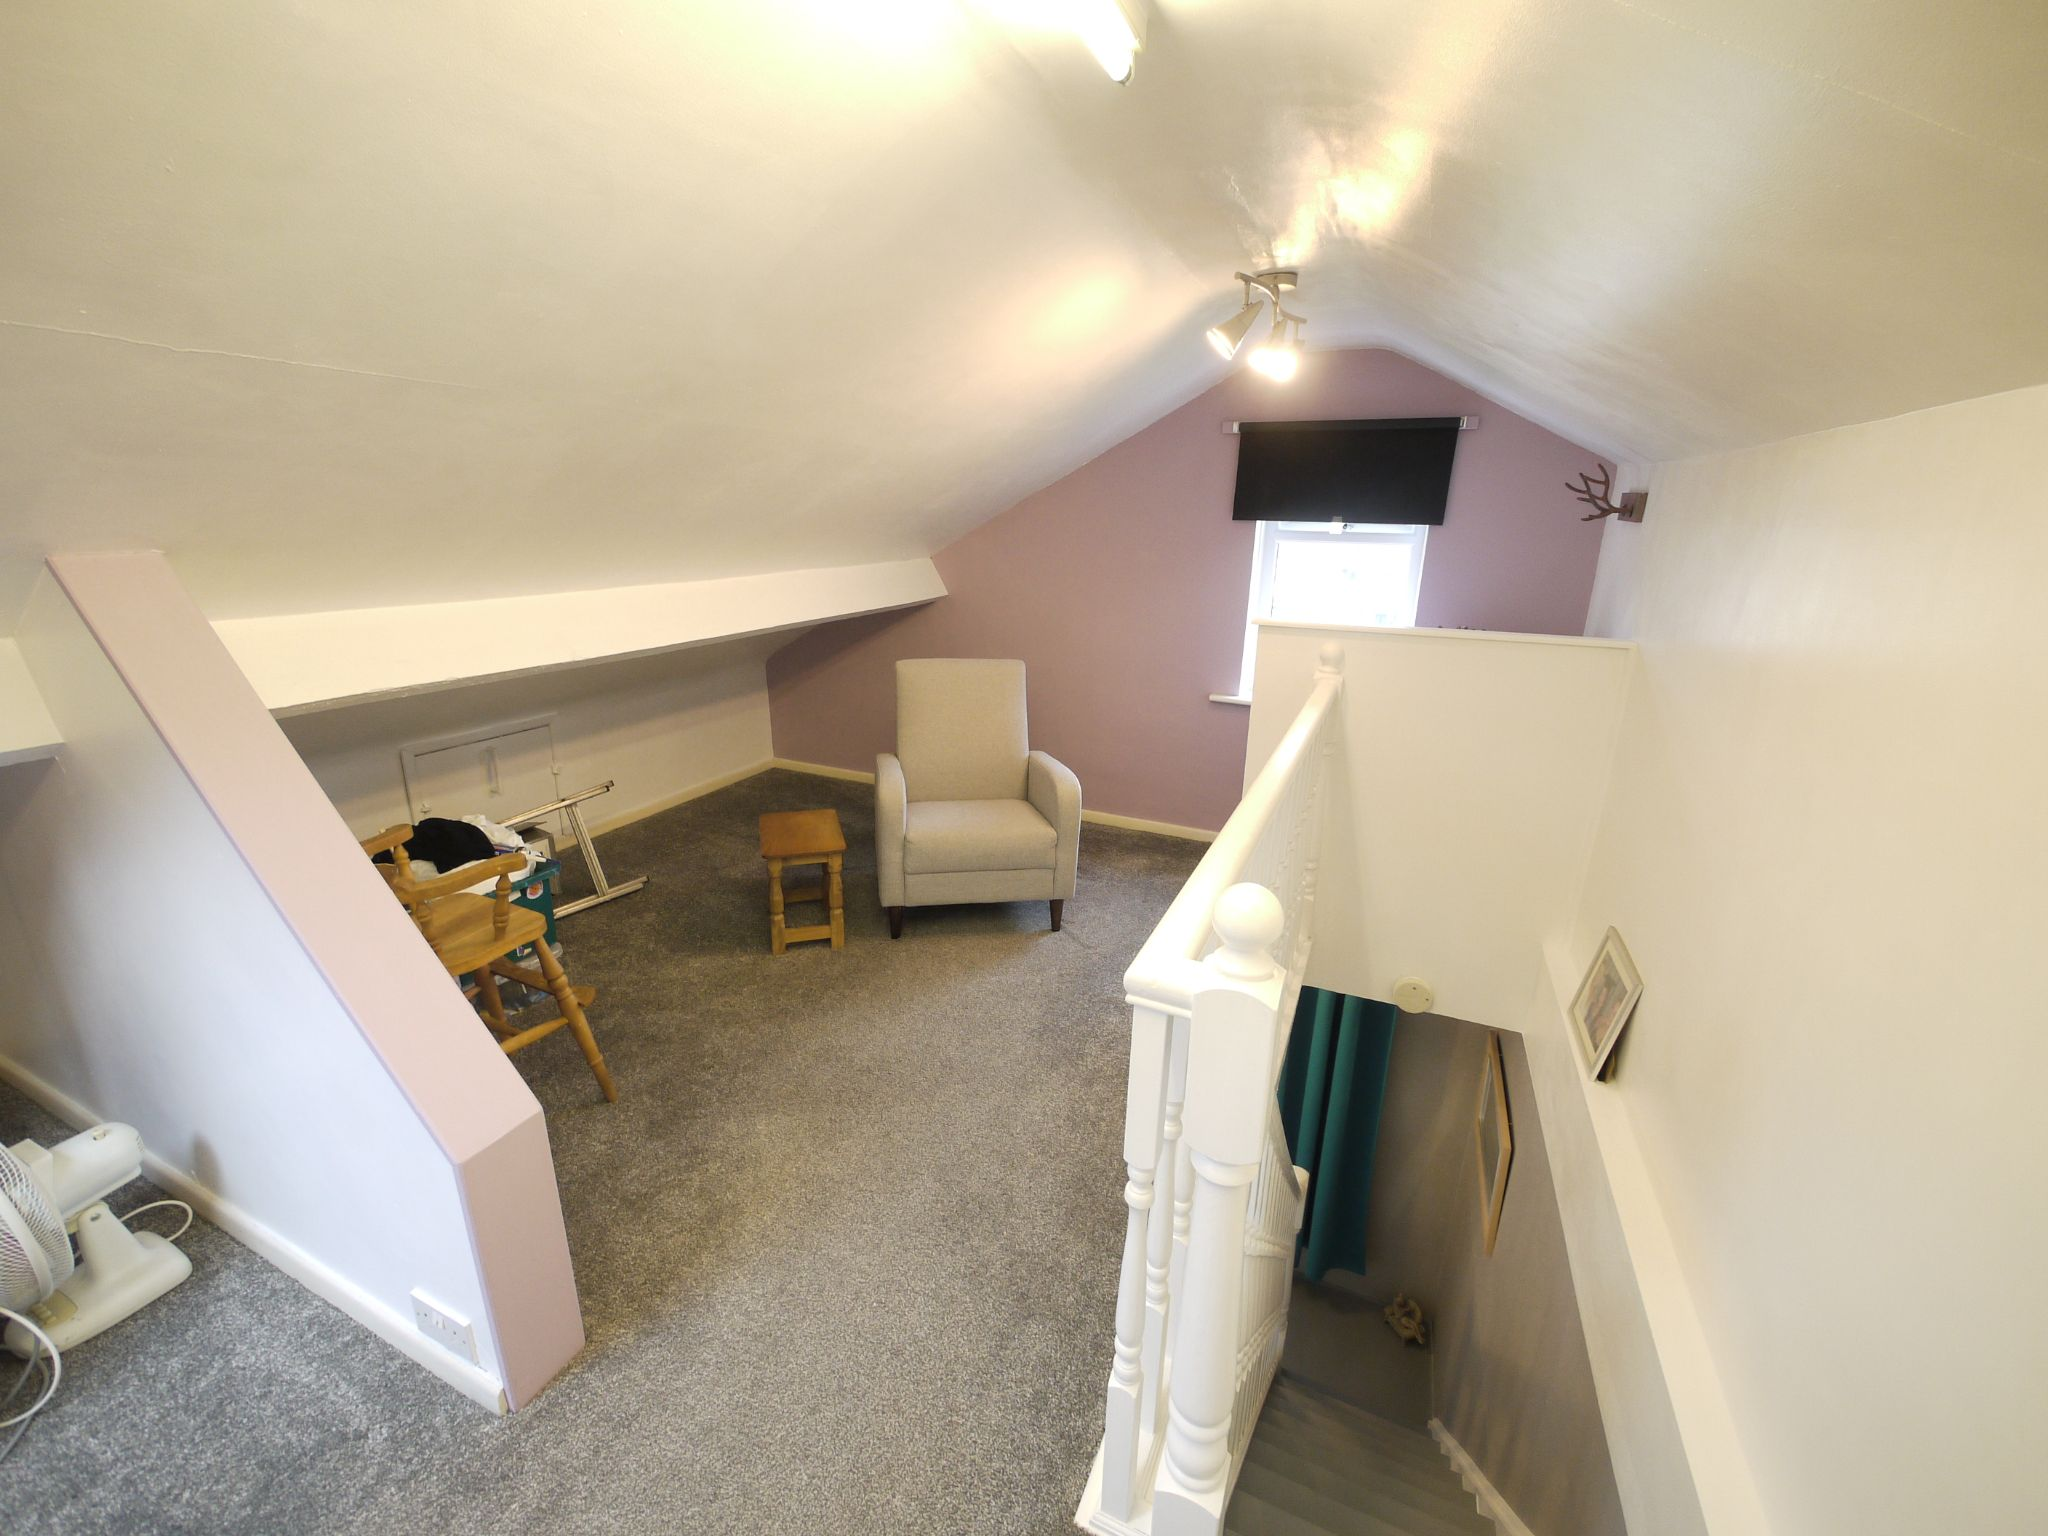 3 bedroom semi-detached house SSTC in Brighouse - Loft Room2.